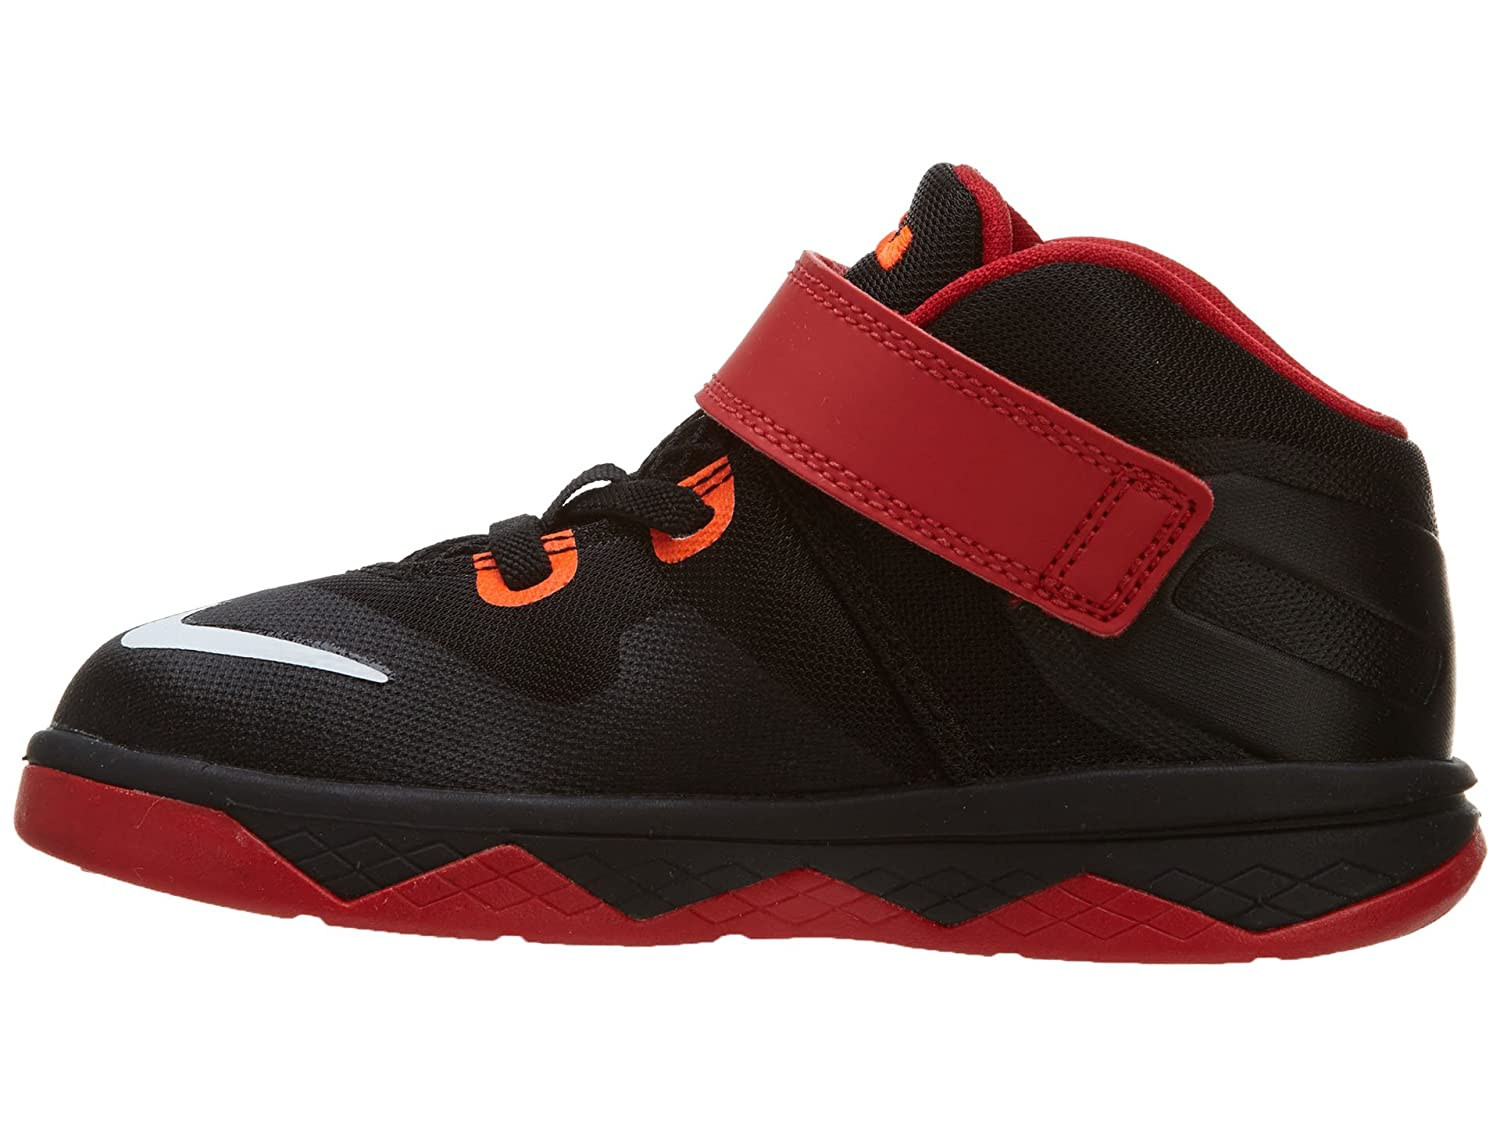 Nike Soldier Viii Toddlers Style 653647